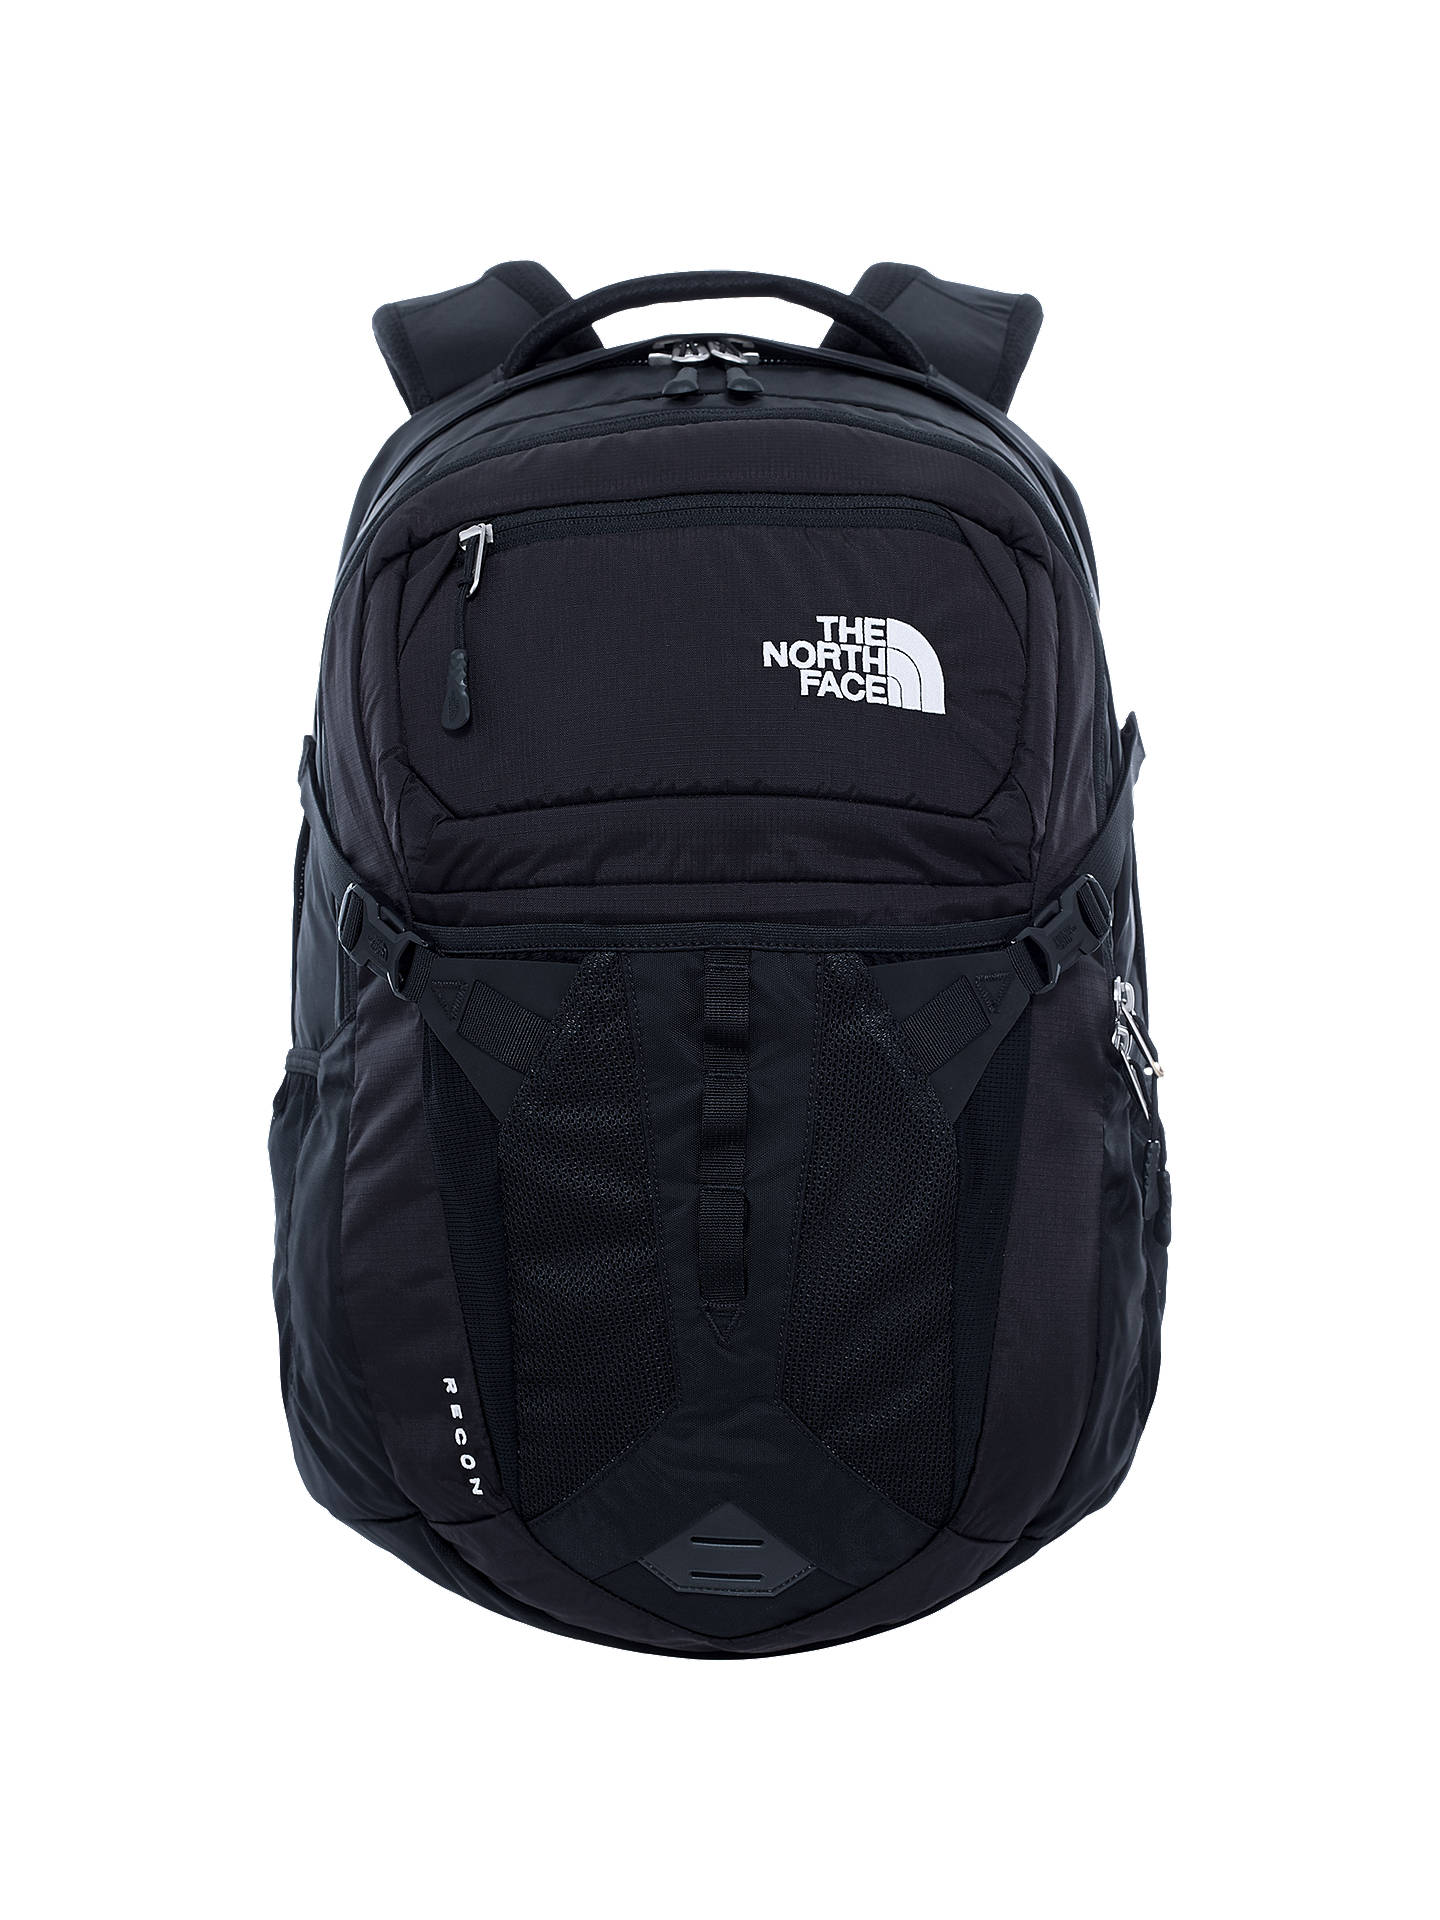 5896eb9f0 The North Face Recon Backpack, Black